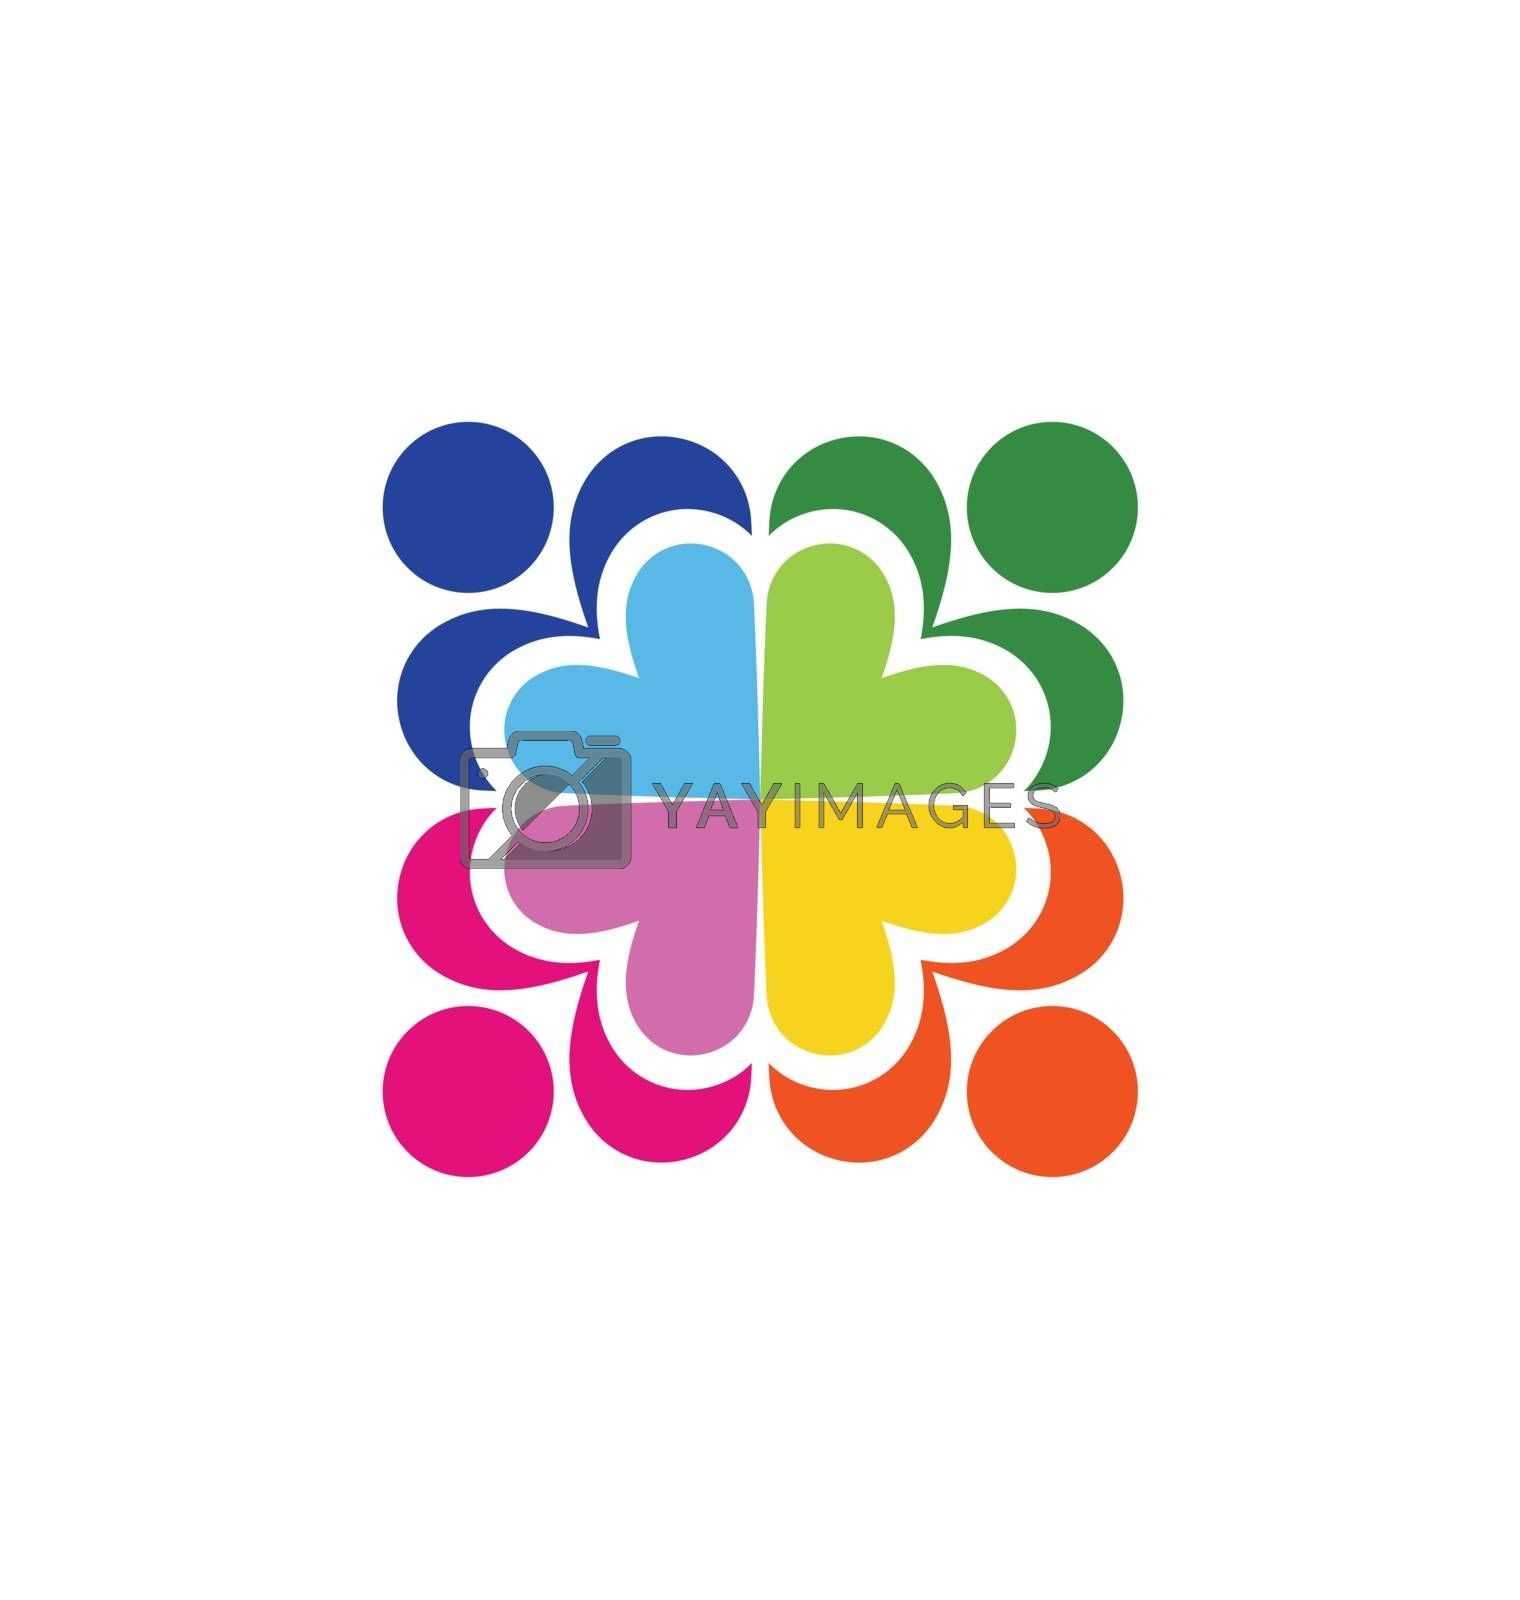 floral shape pattern and teamwork hearts logo people crowd connection care symbol icon vector design illustration